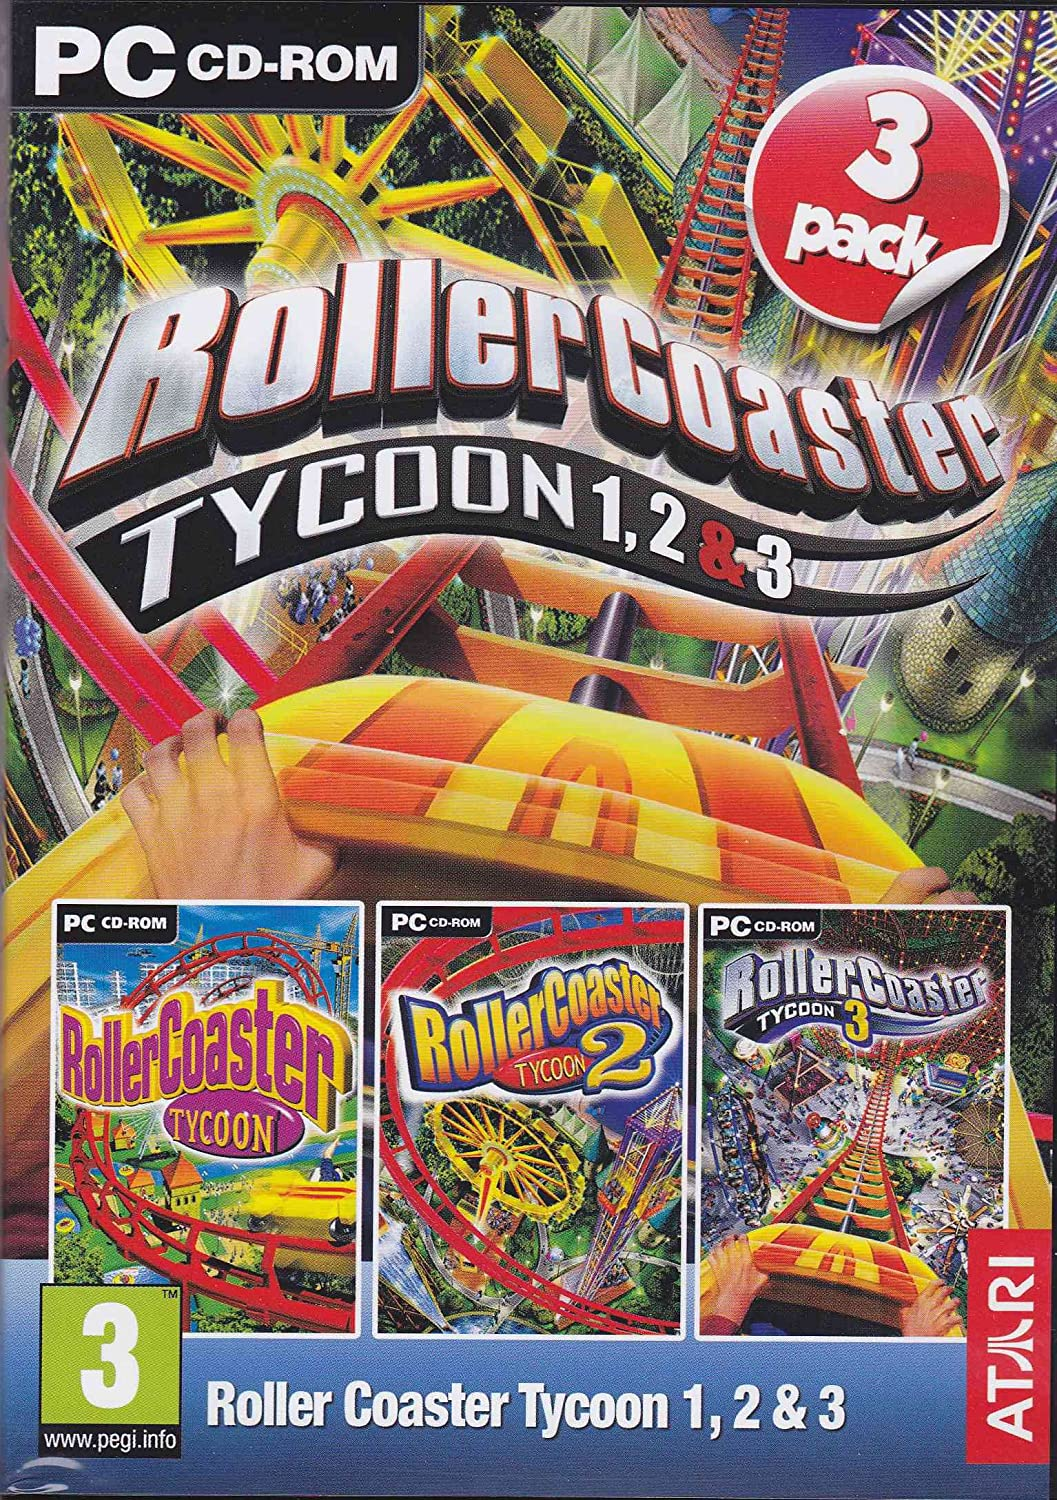 Amazon com: Roller Coaster Tycoon 1,2,3 (3-pack): Video Games